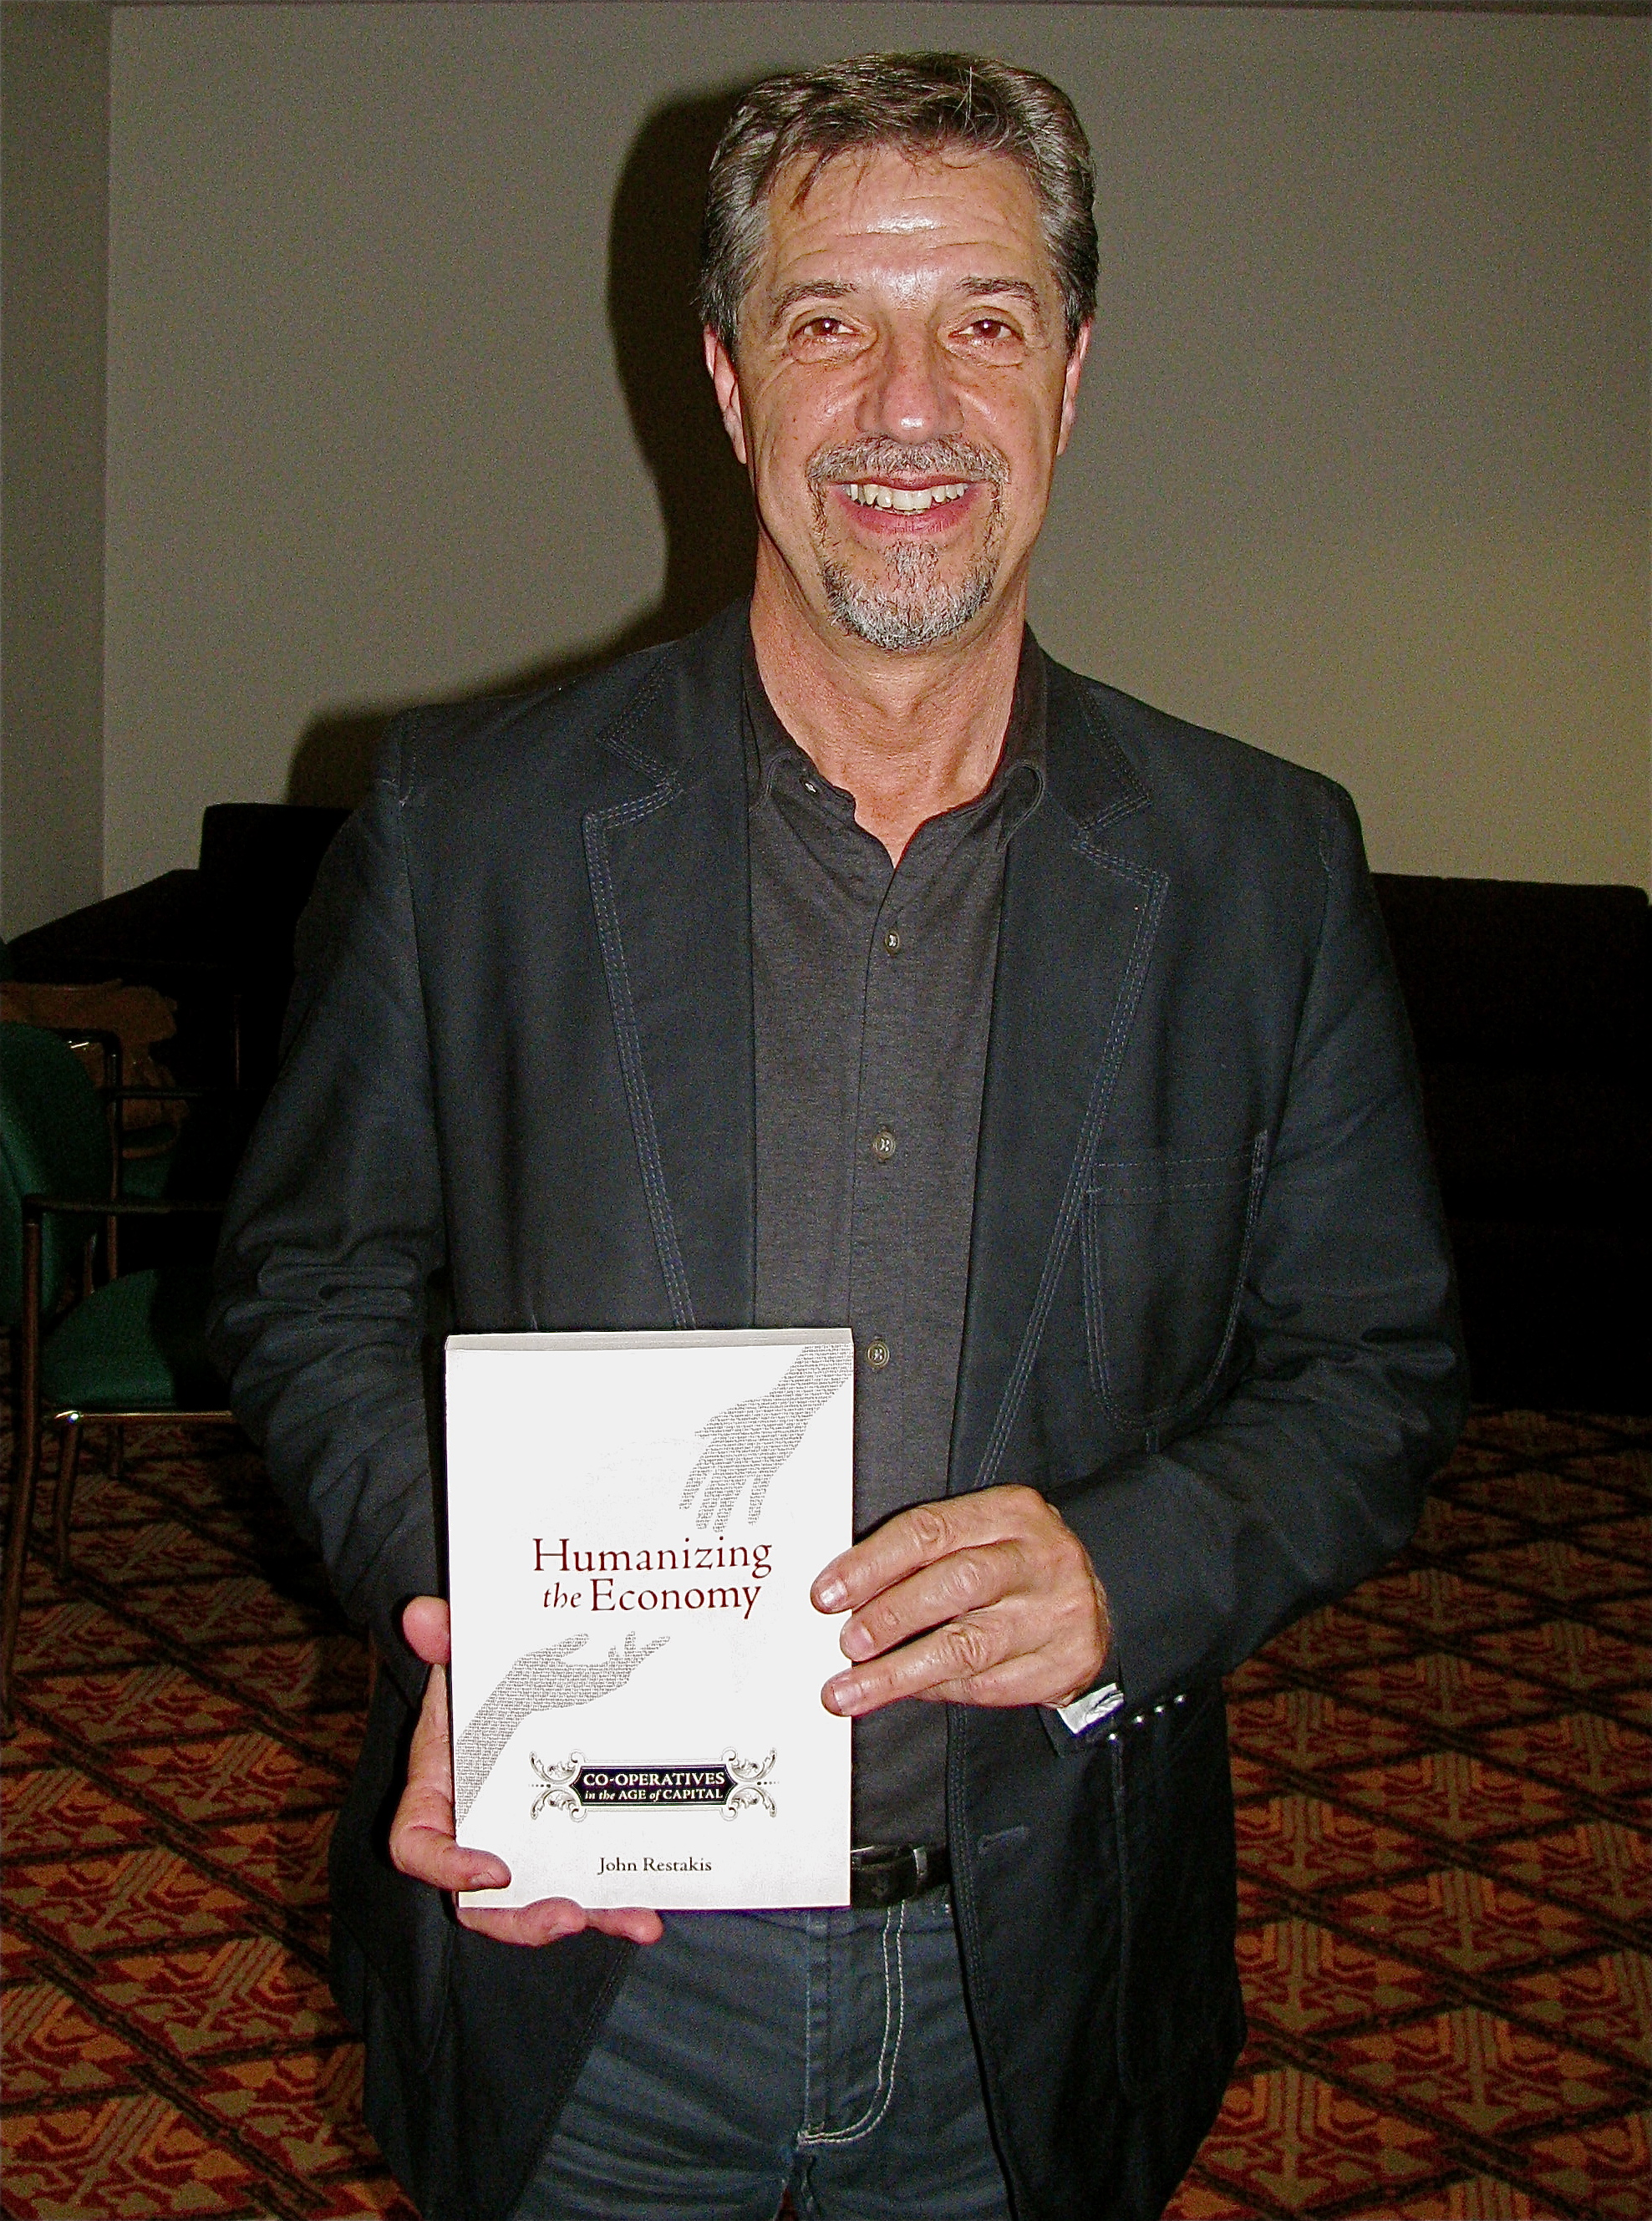 John Restakis with his book Humanizing the Economy